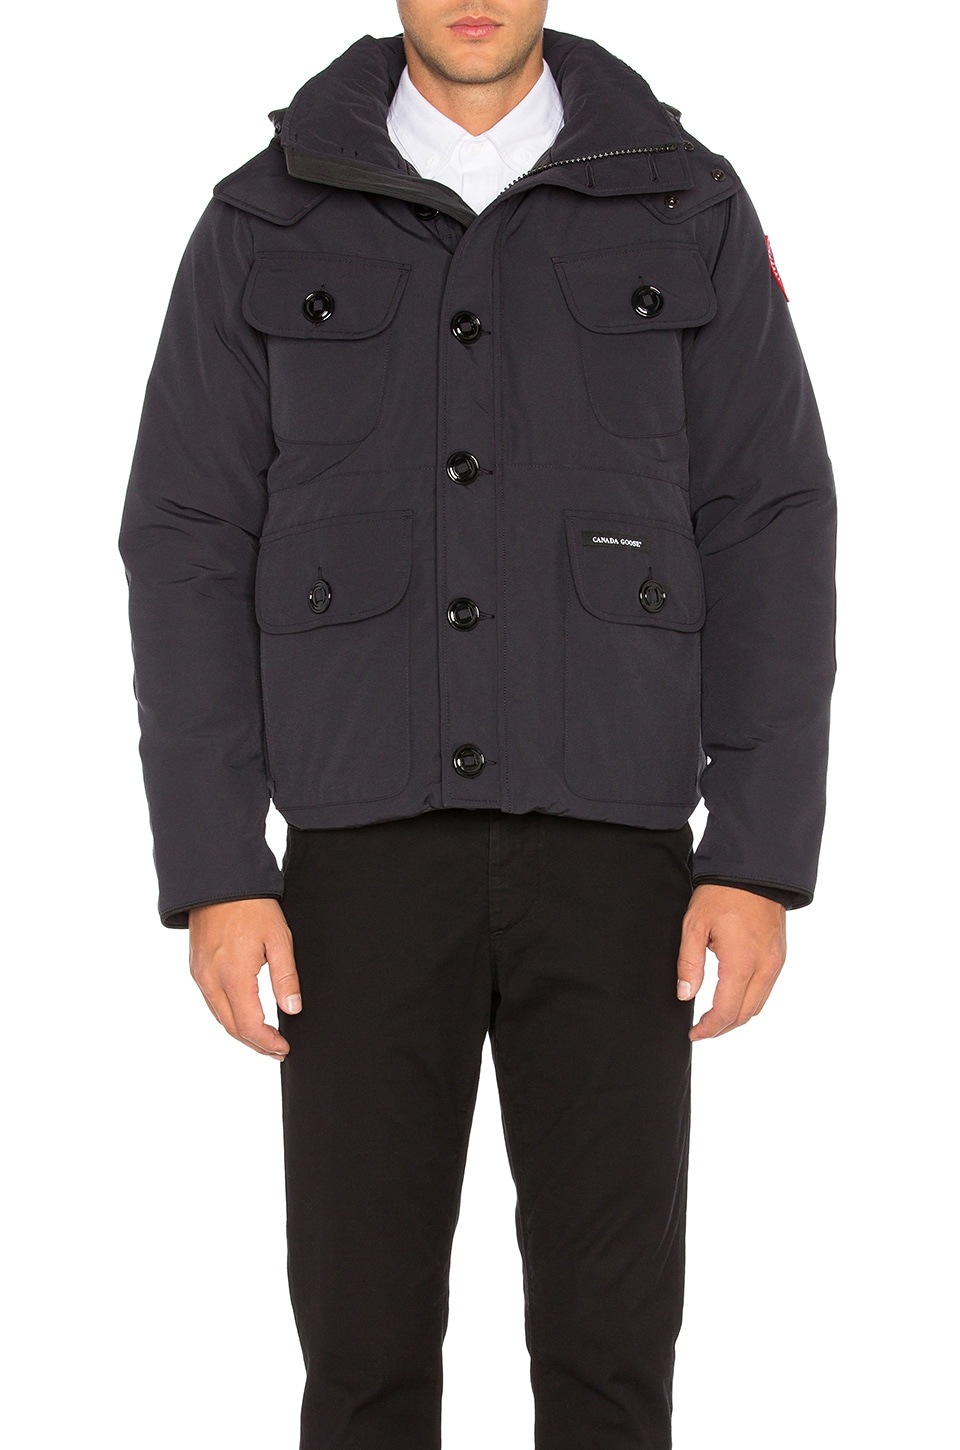 Photo of Selkirk Parka by Canada Goose men clothes